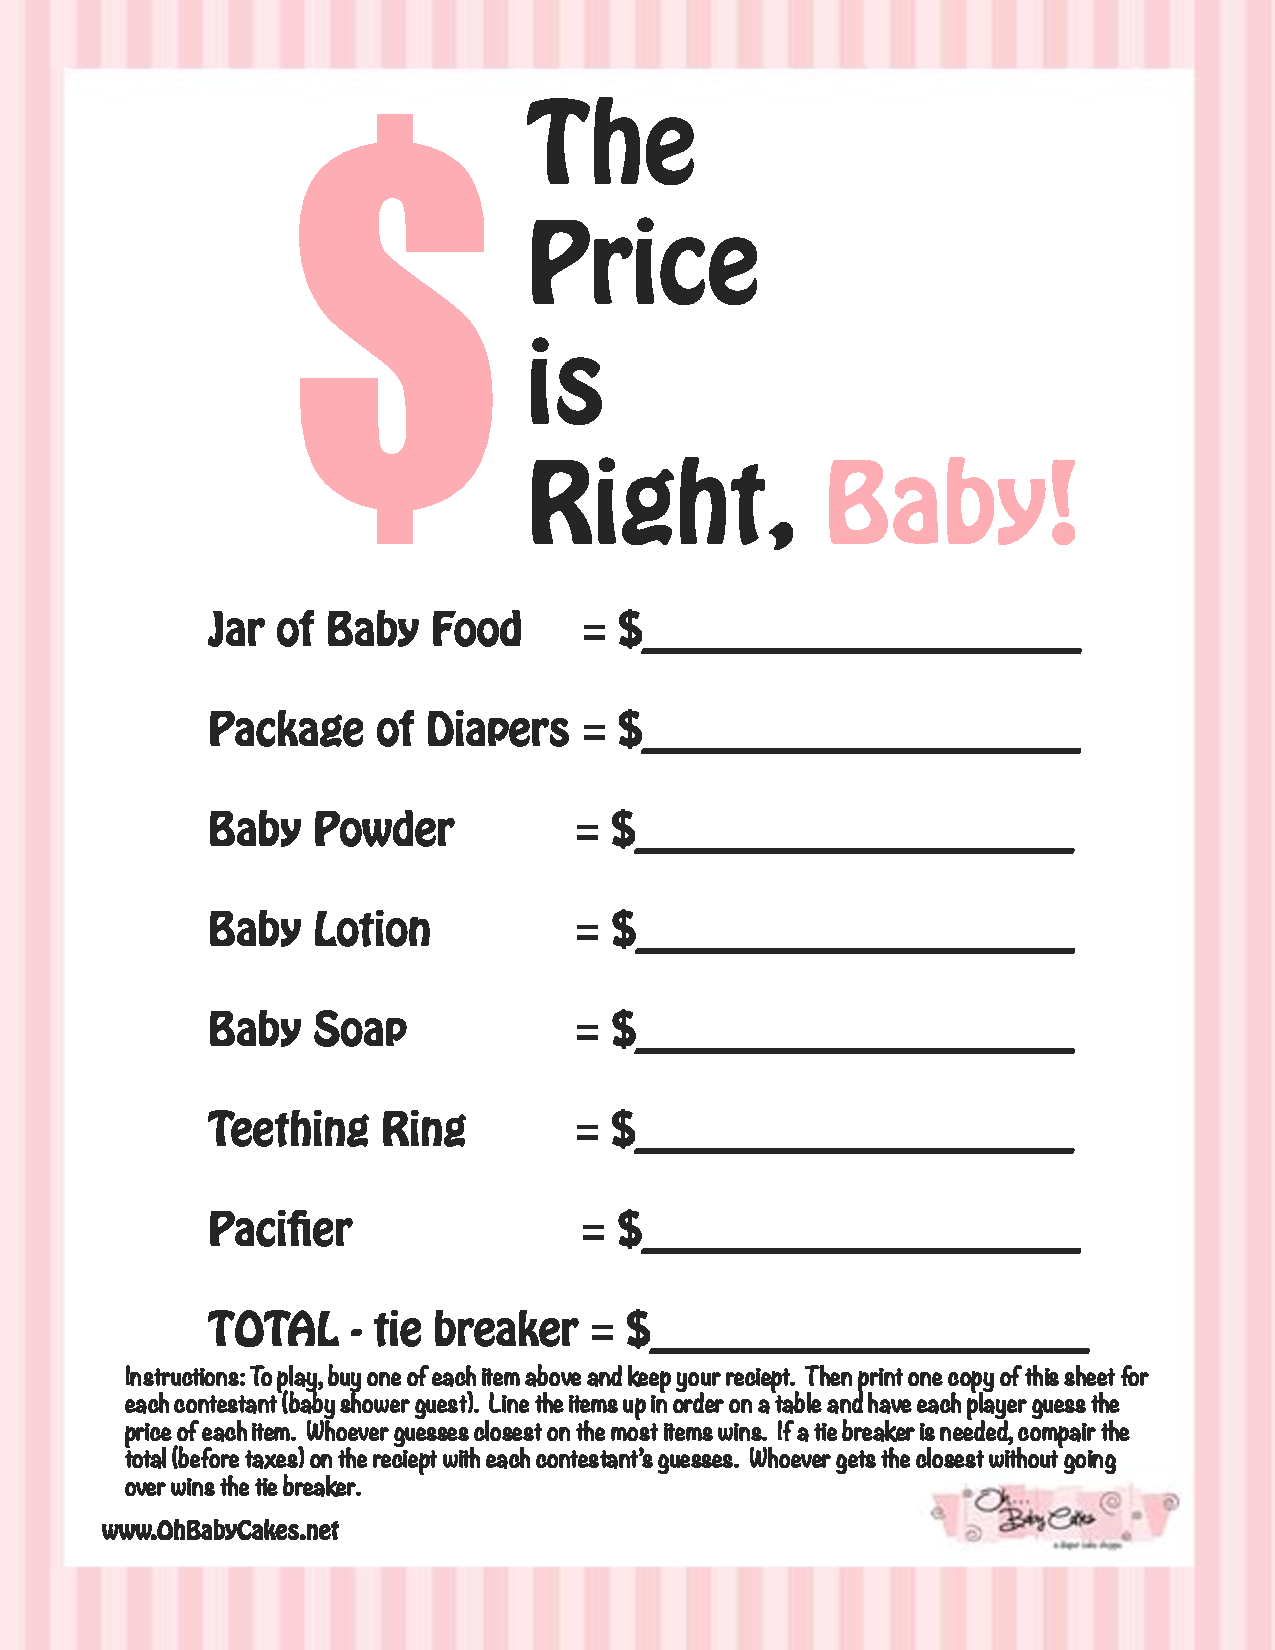 Baby Boy Shower Agreeable Free Printable Baby Shower Games For Large - Free Printable Baby Shower Games For Large Groups